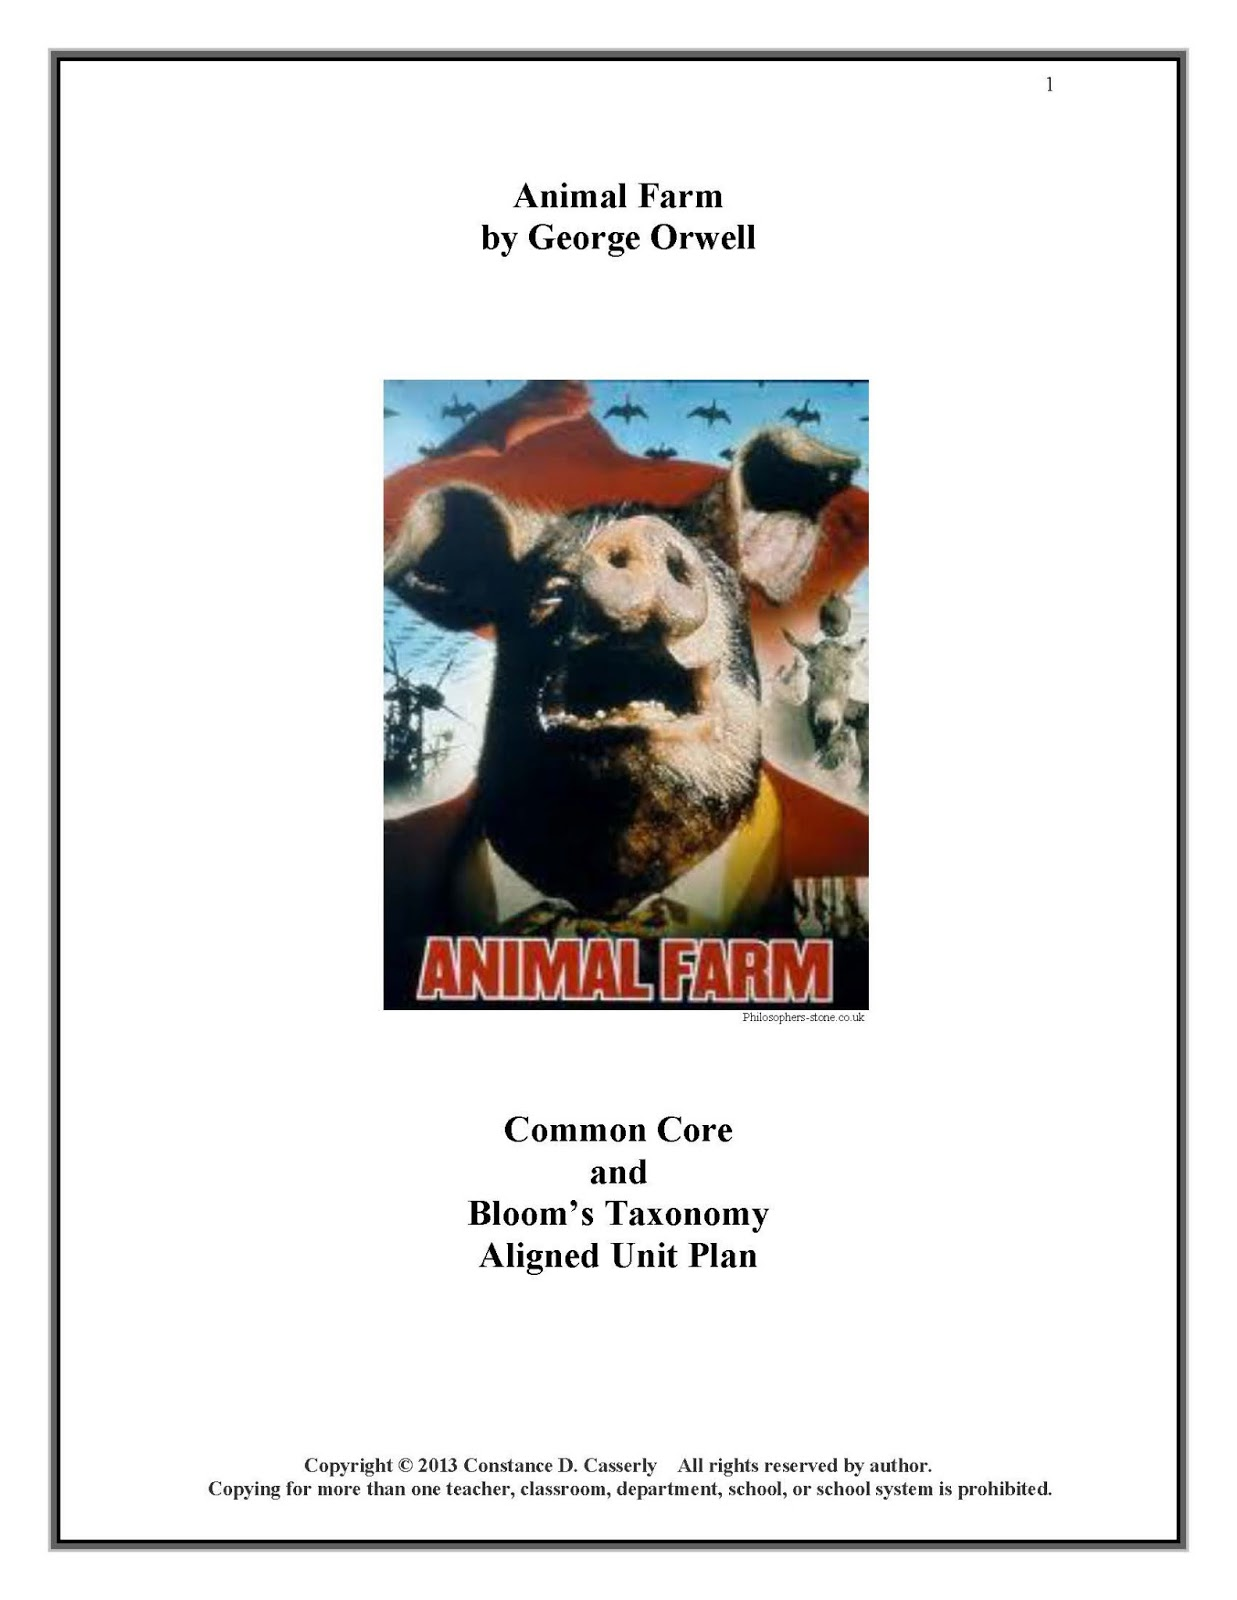 revolution in george orwells animal farm essay